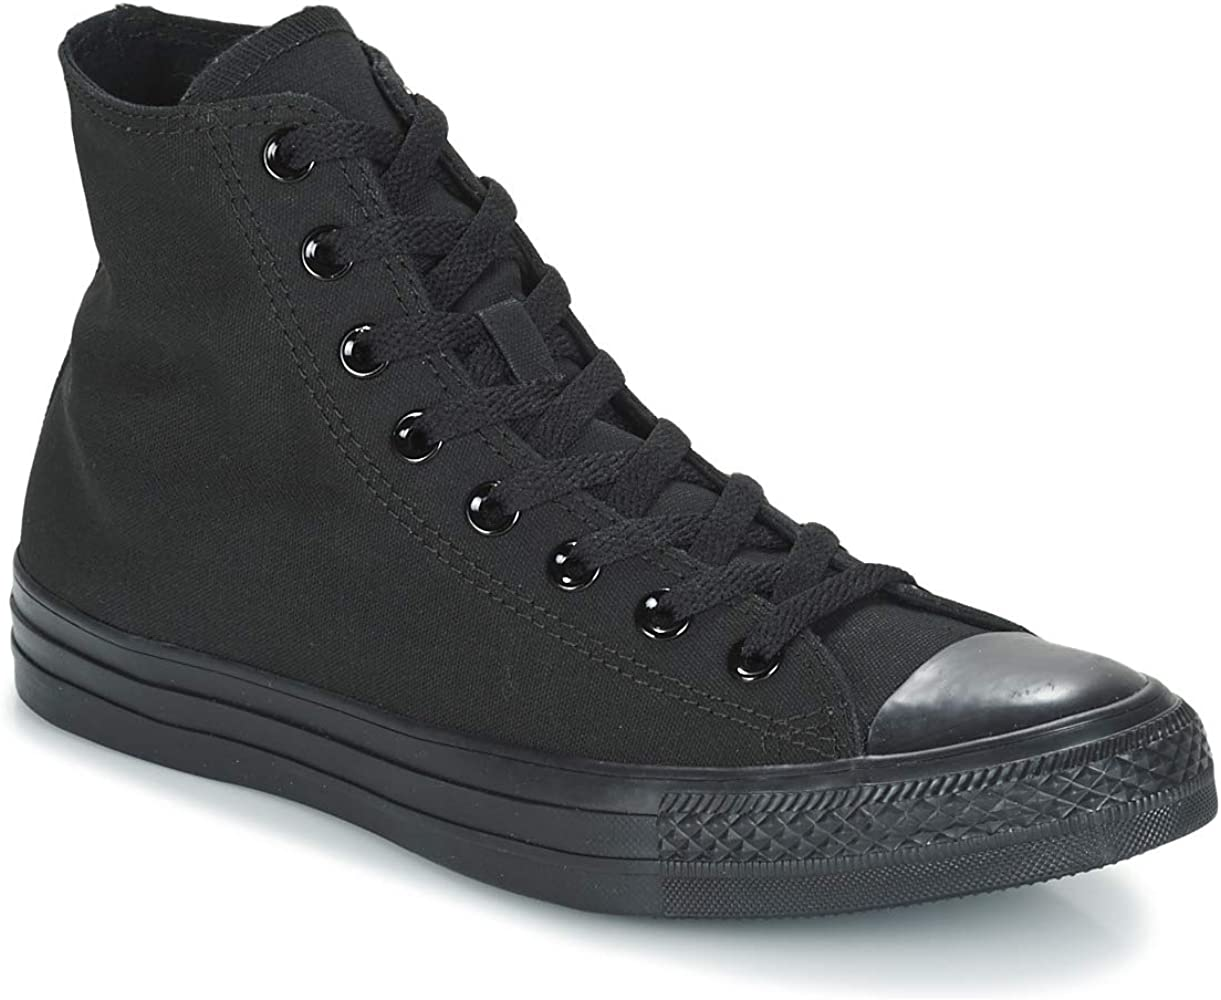 mecanismo montaje Cabra  Amazon.com | Converse Chuck Taylor All Star Mono Hi Trainers Men Black -  3.5 - High Top Trainers Shoes | Fashion Sneakers